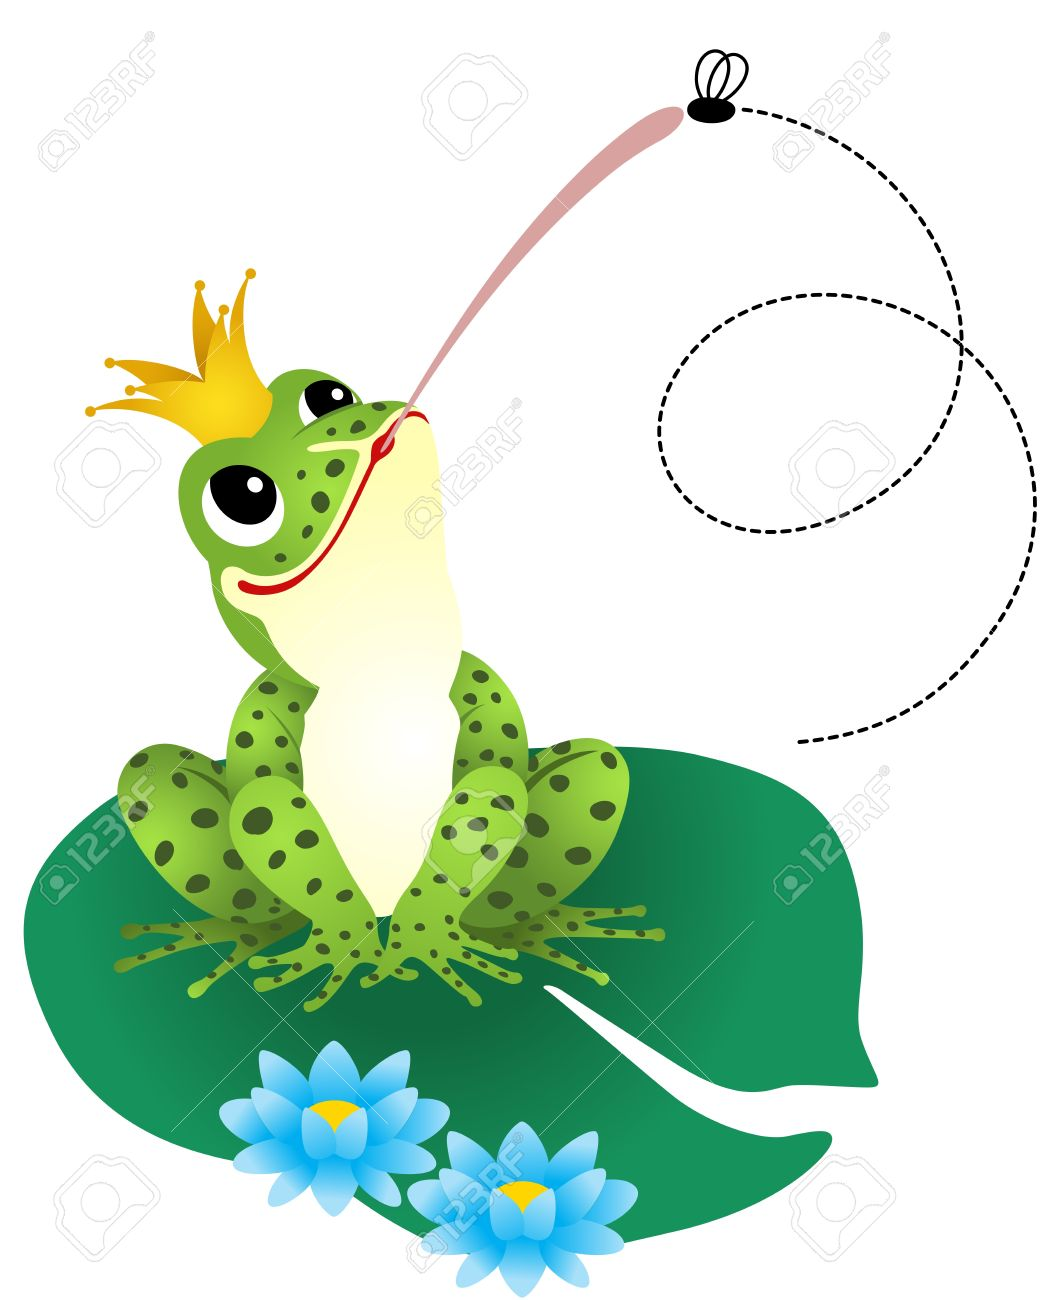 Frog Catching A Fly Royalty Free Cliparts, Vectors, And Stock.